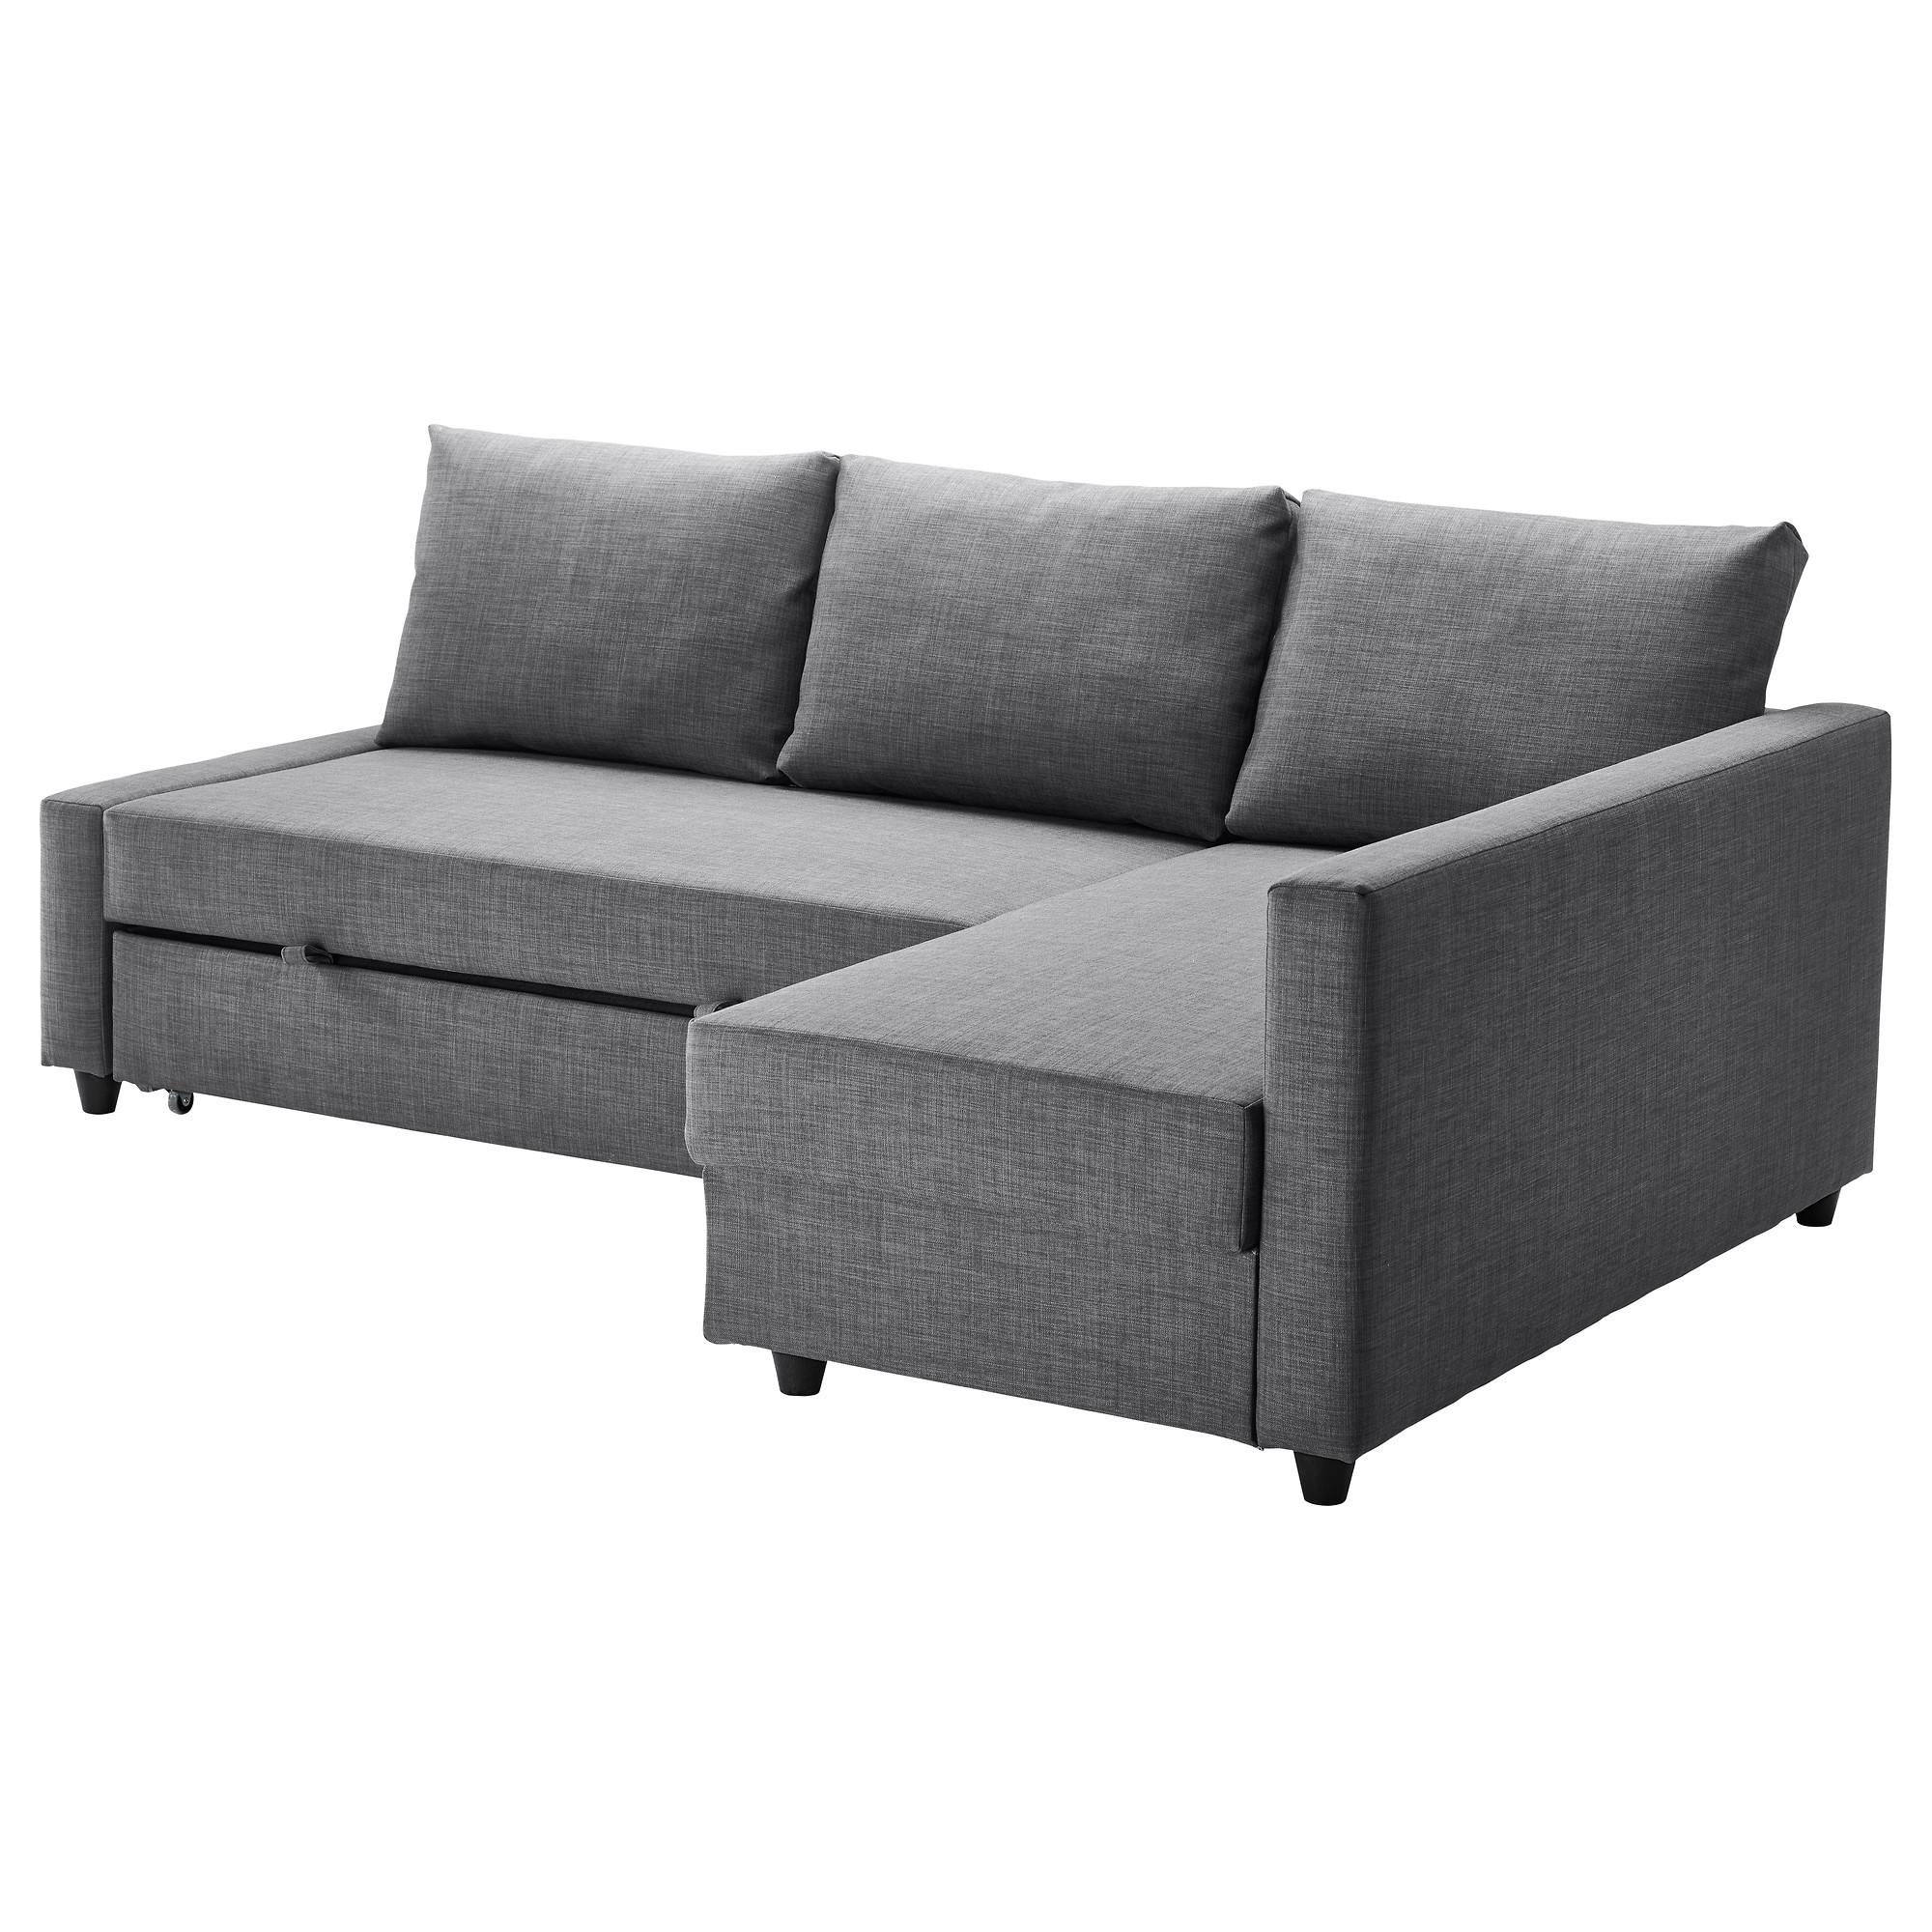 Friheten Corner Sofa Bed With Storage – Skiftebo Dark Grey – Ikea Regarding Ikea Storage Sofa Bed (Image 4 of 20)